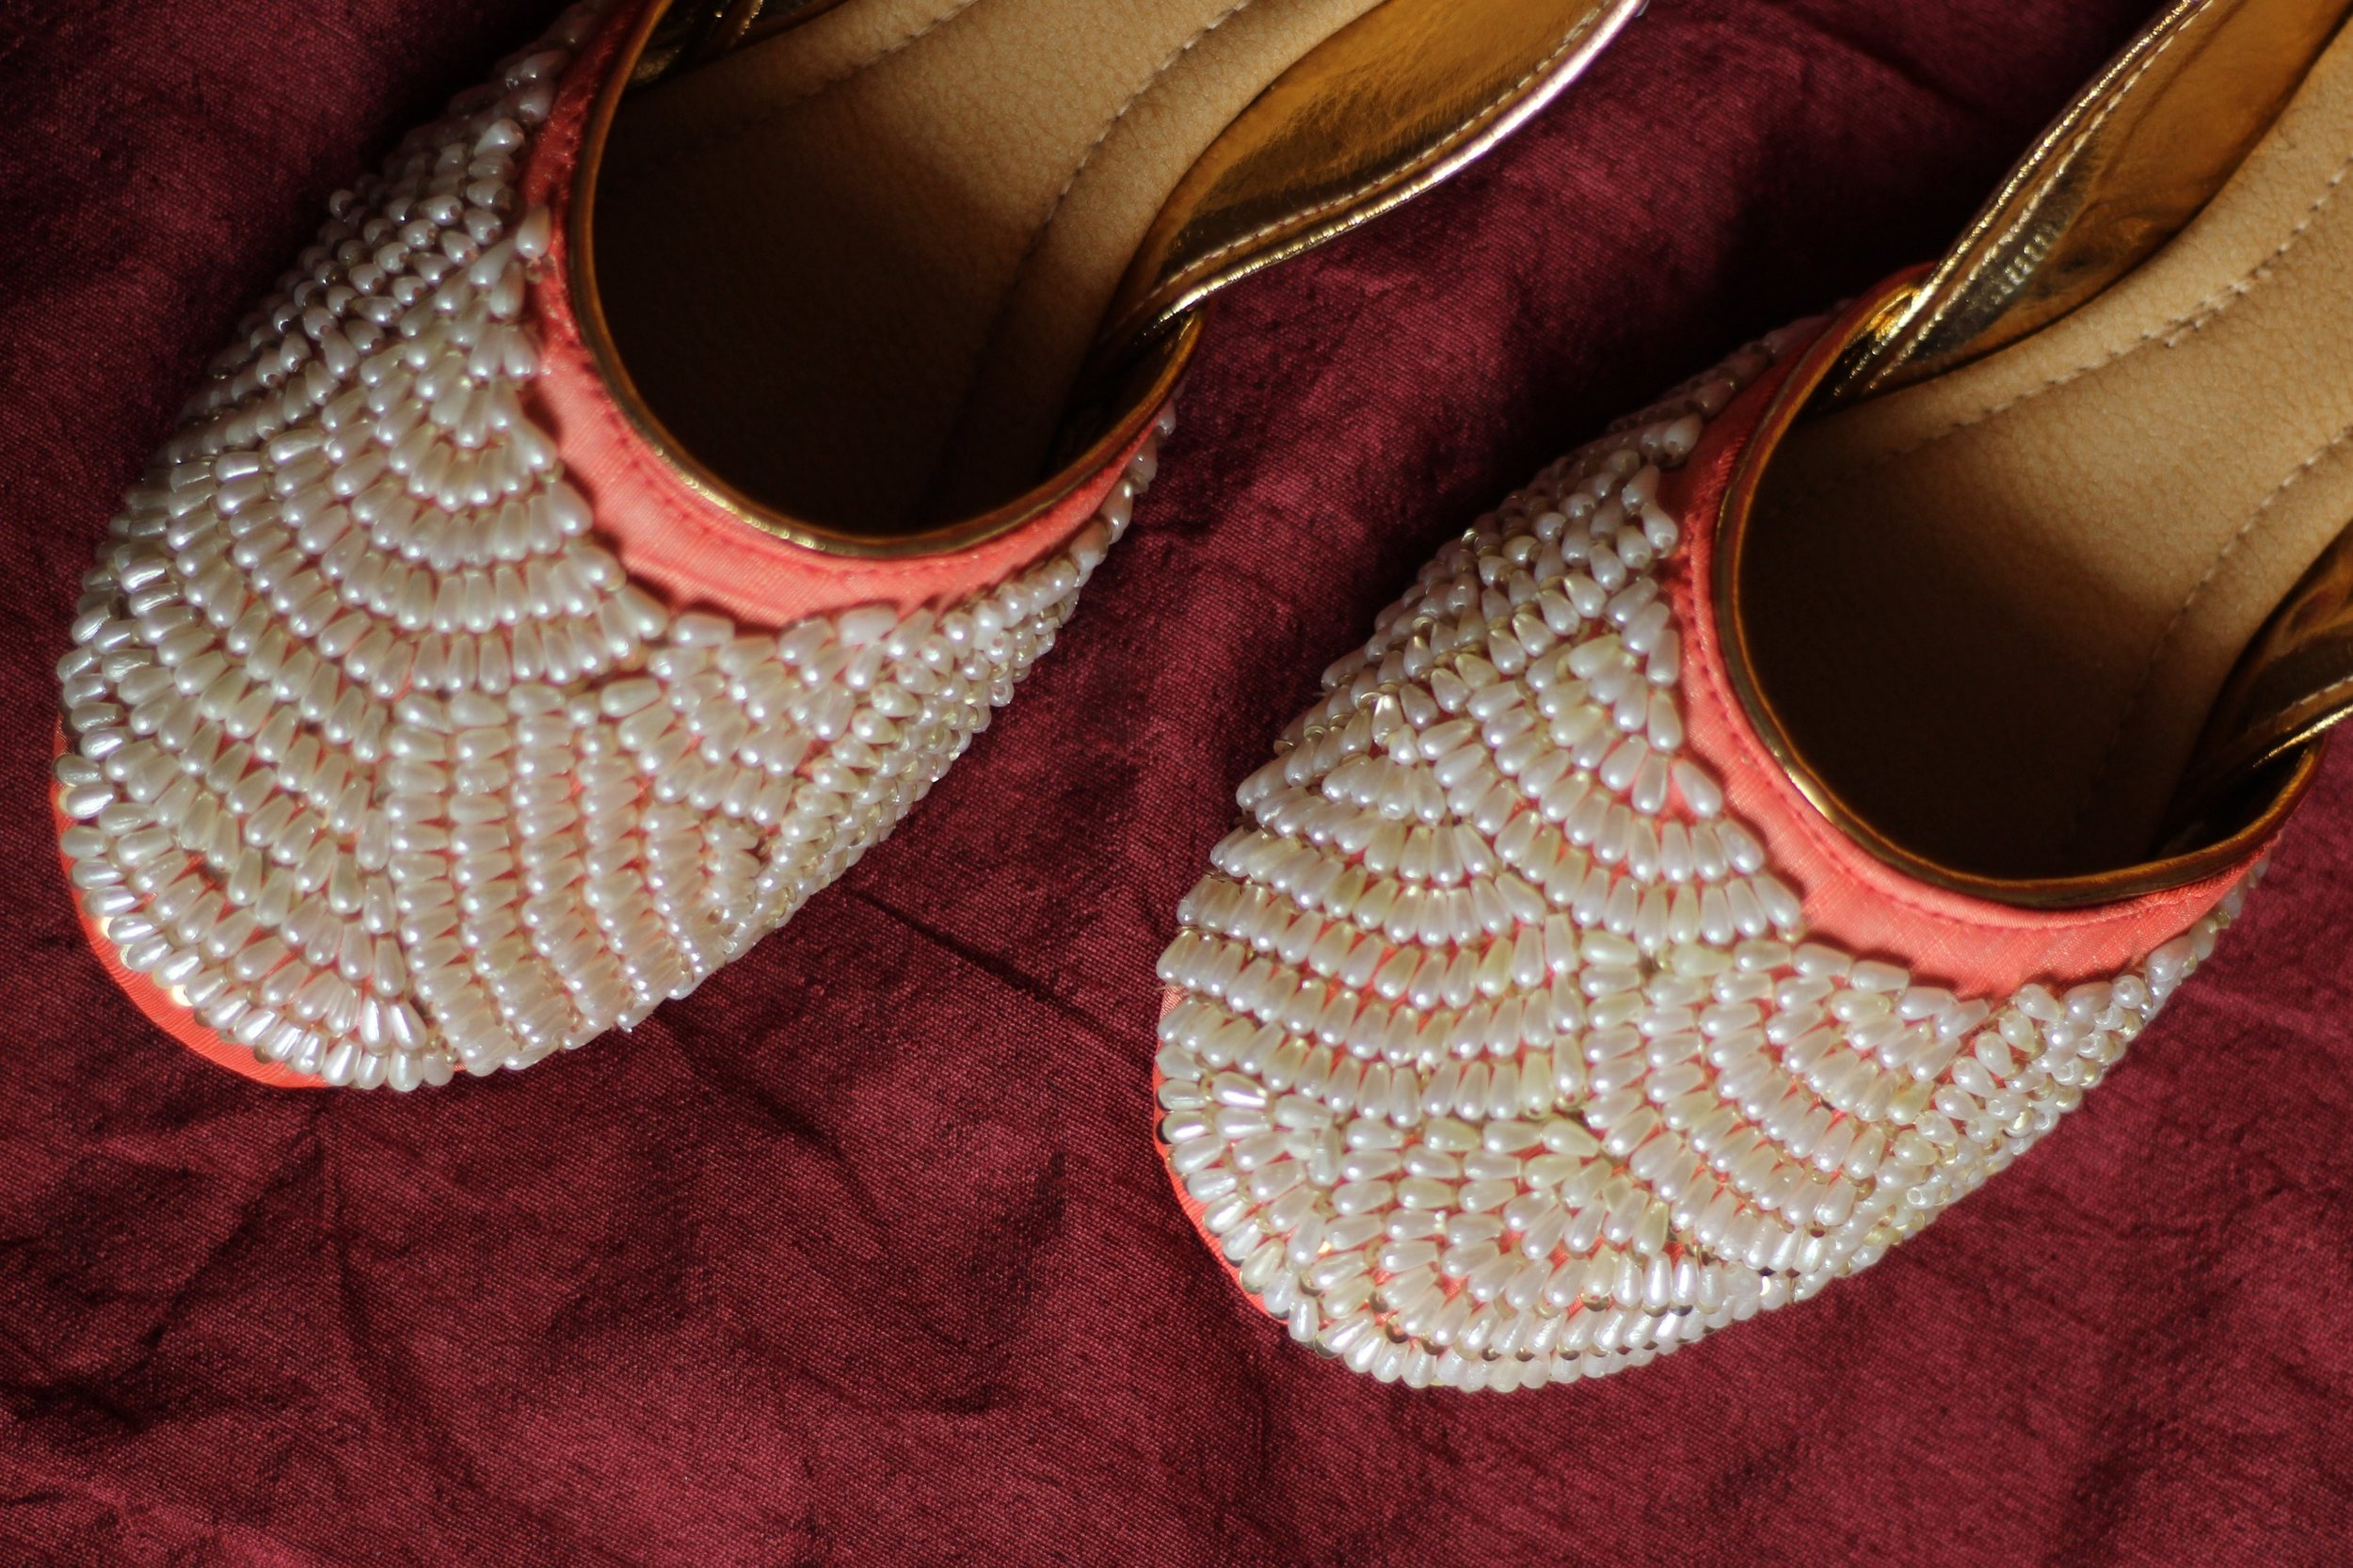 INARA - Carefully handcrafted with utmost precision to set you apart - Just as an oyster marks its pearl !